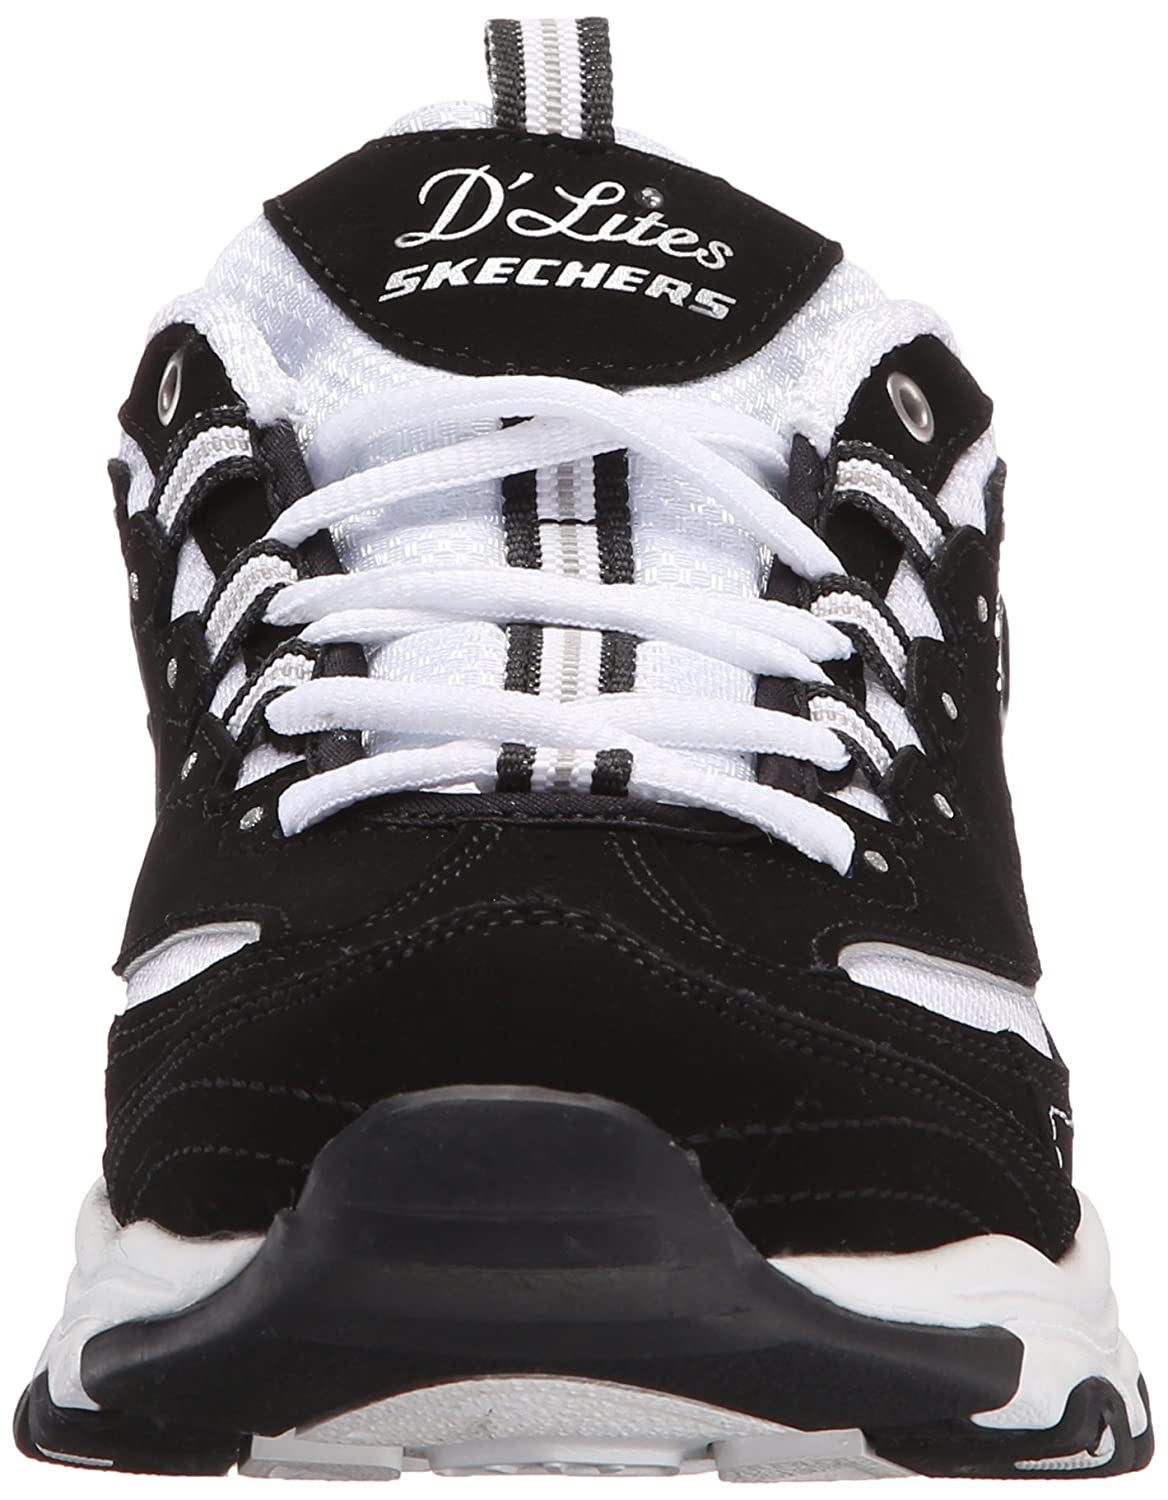 Skechers Women's D'Lites Memory Foam Lace-up Sneaker B016R0KHNQ 6.5 B(M) US|Biggest Fan Black/White